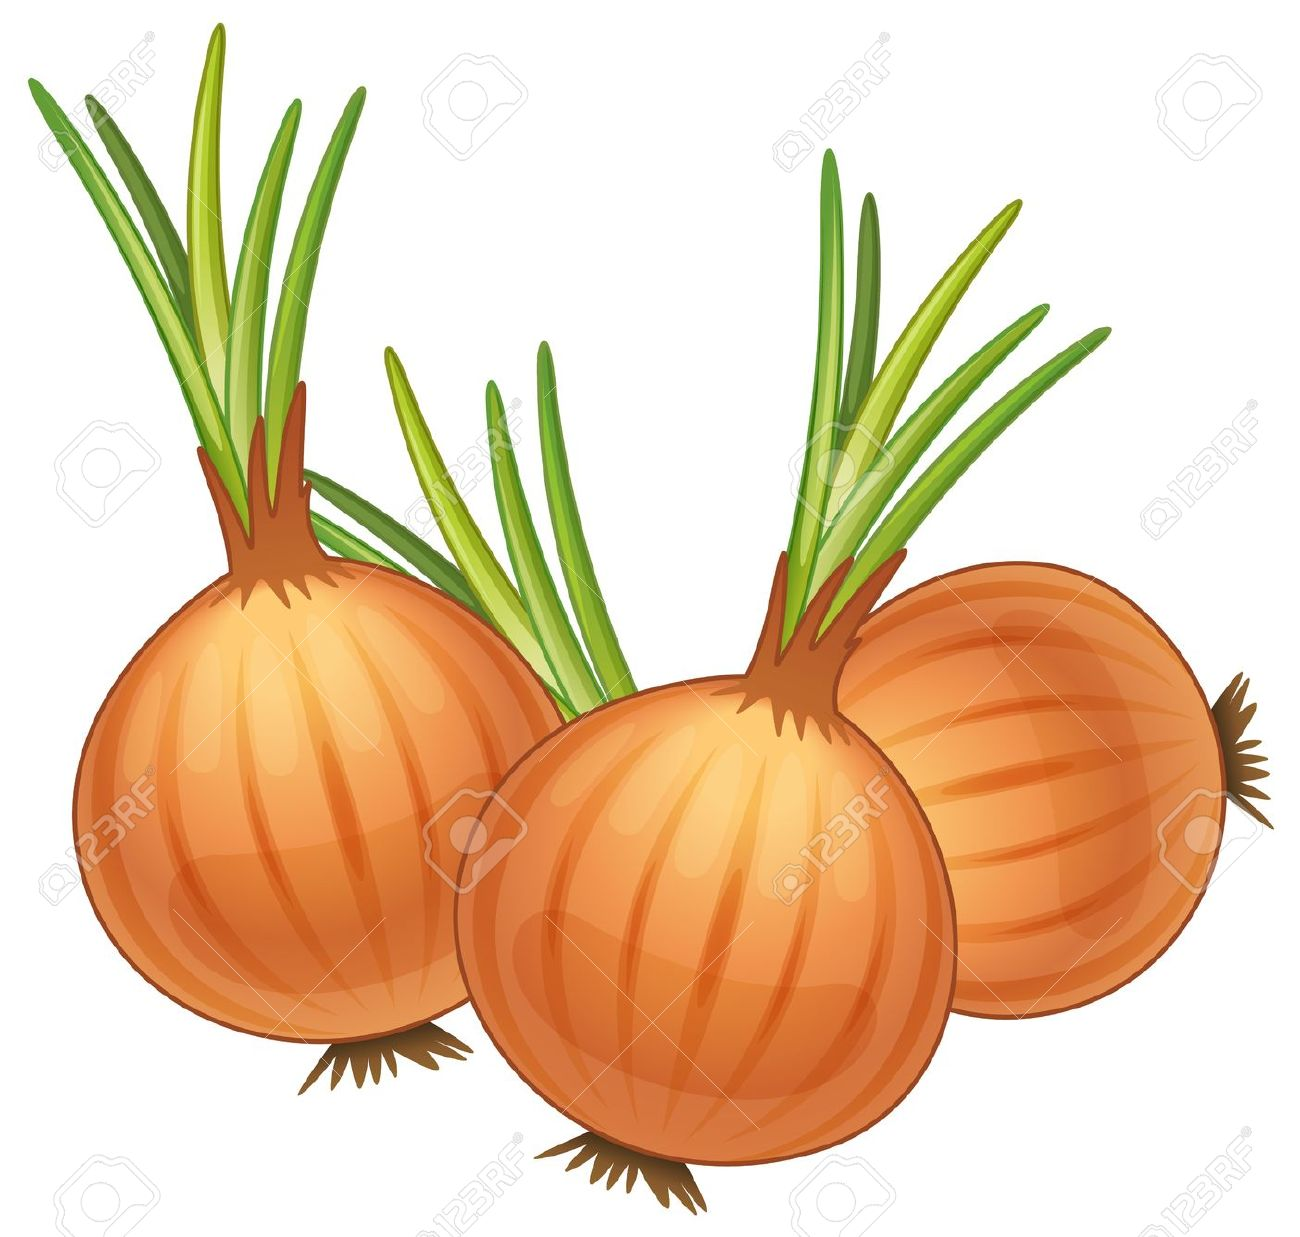 Onion clipart 1 » Clipart Station.